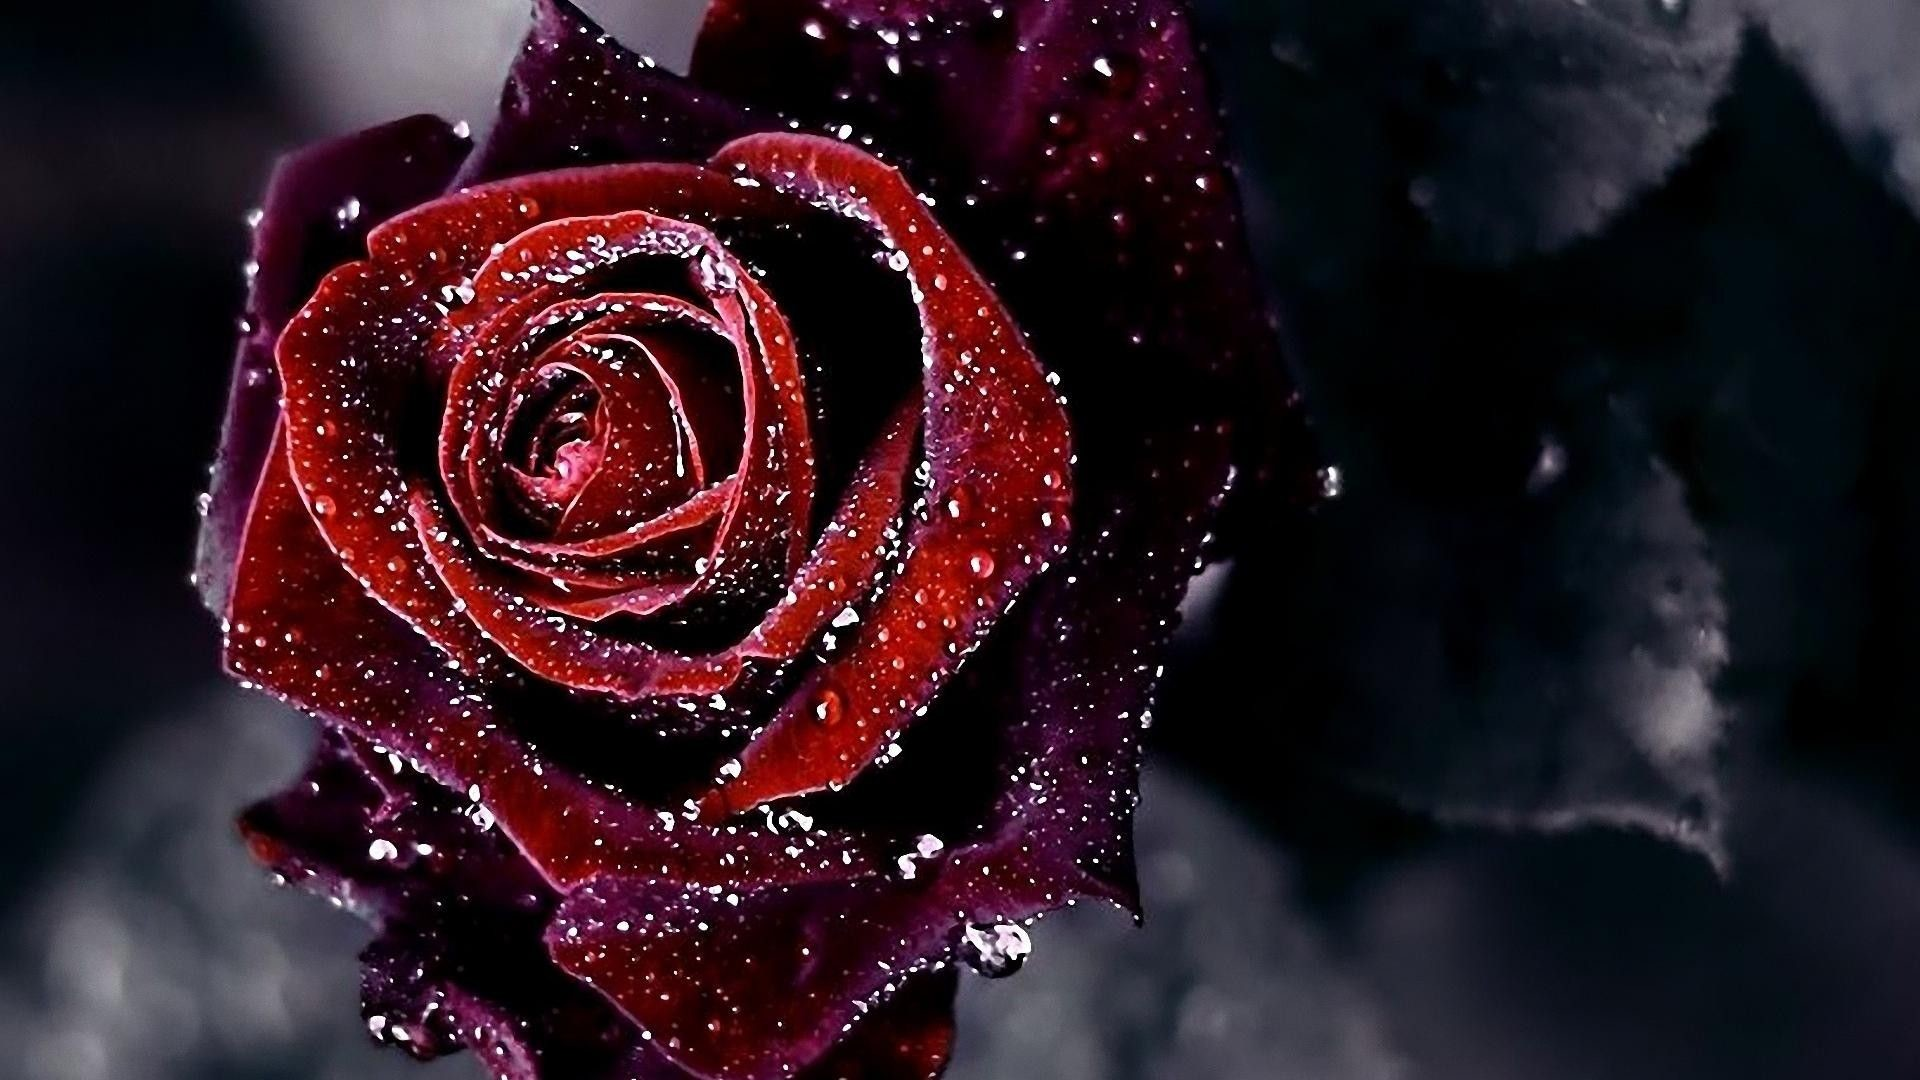 Gothic Roses Wallpaper (63+ Images